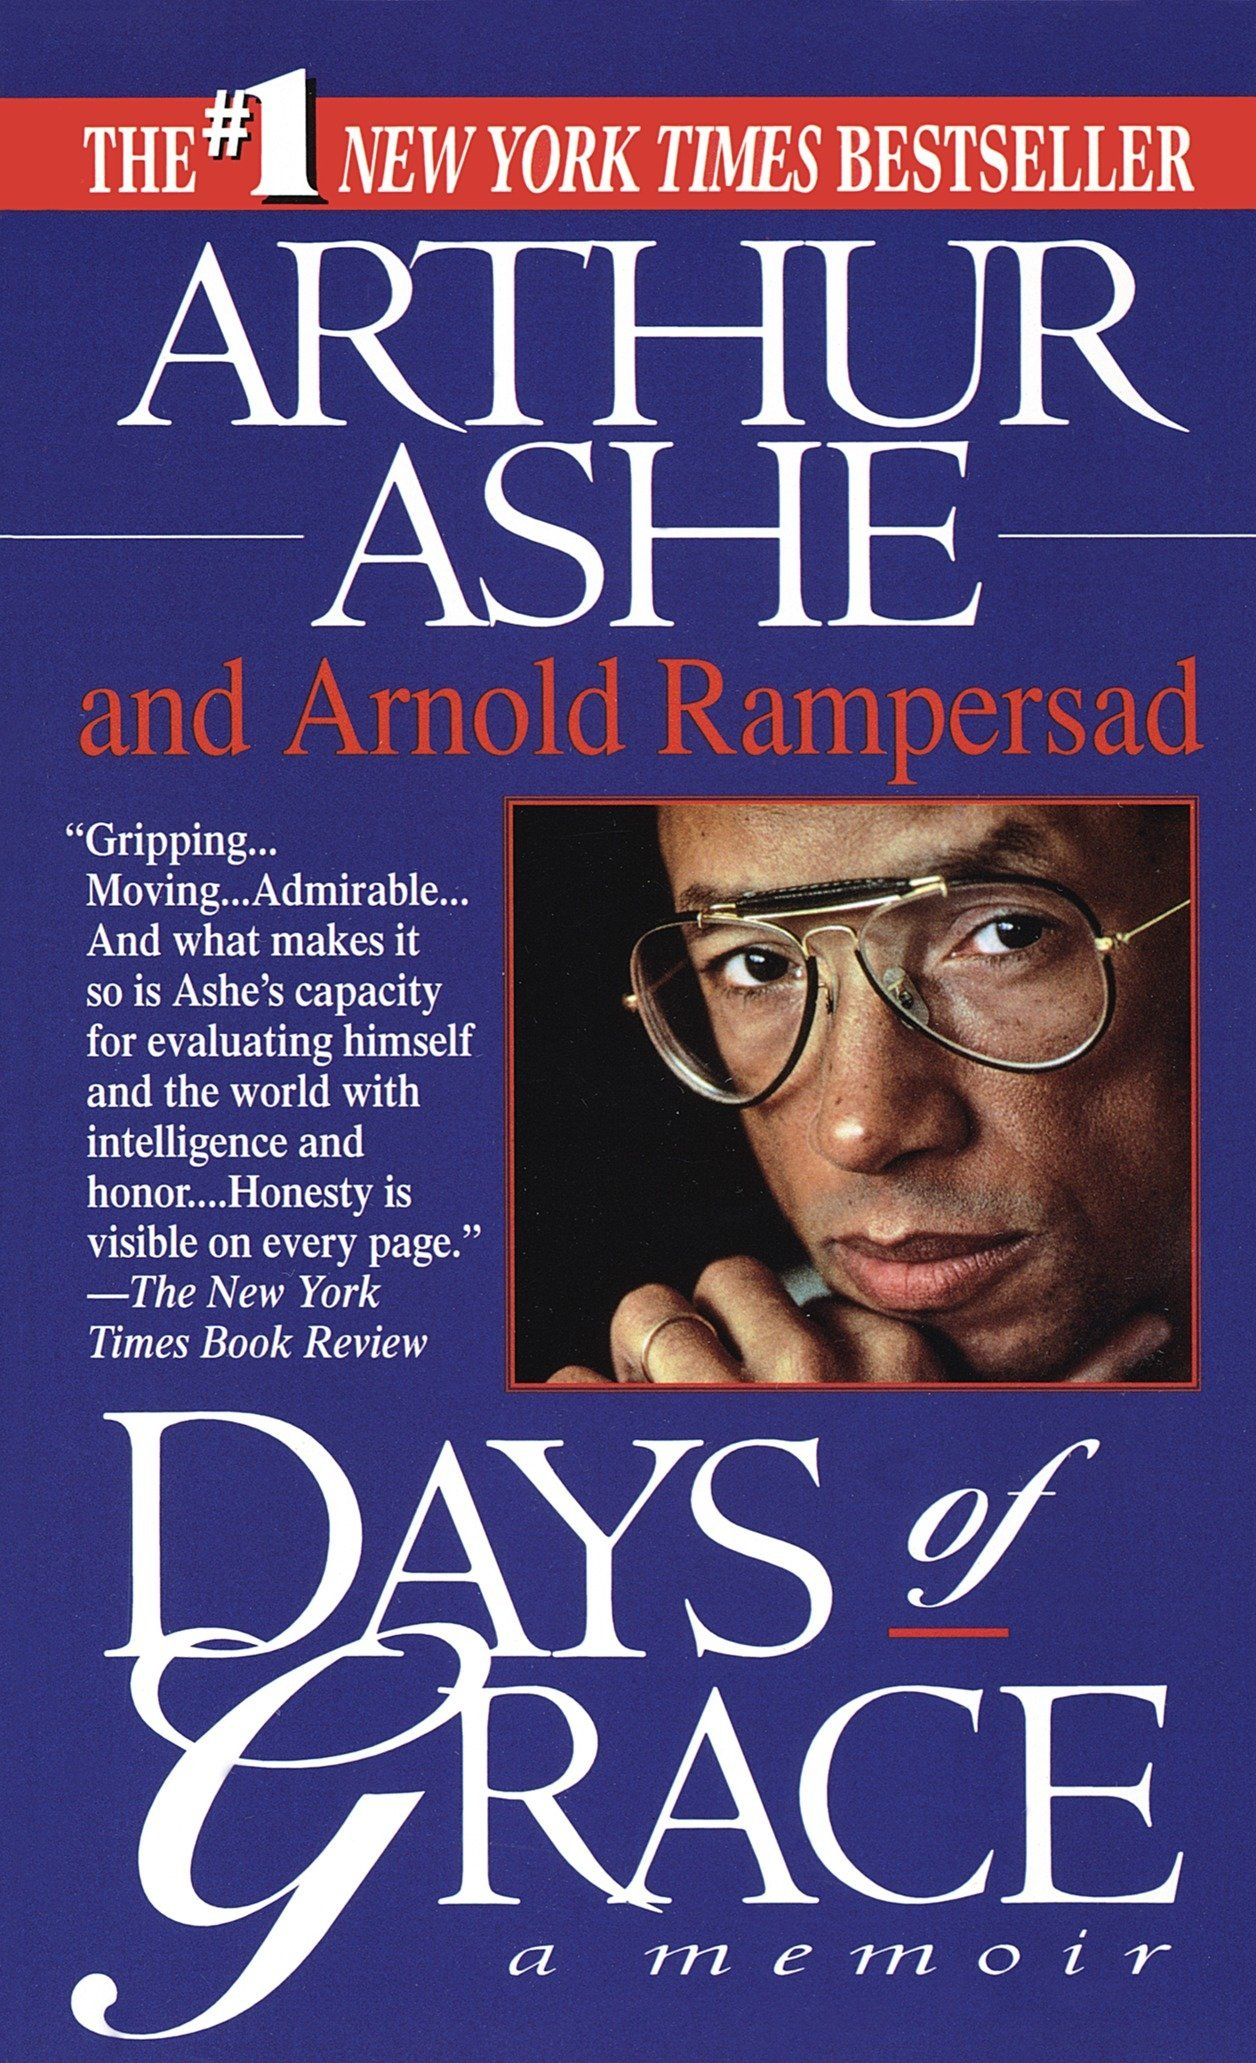 An image of Days of Grace by Arthur Ashe and Arnold Rampersad